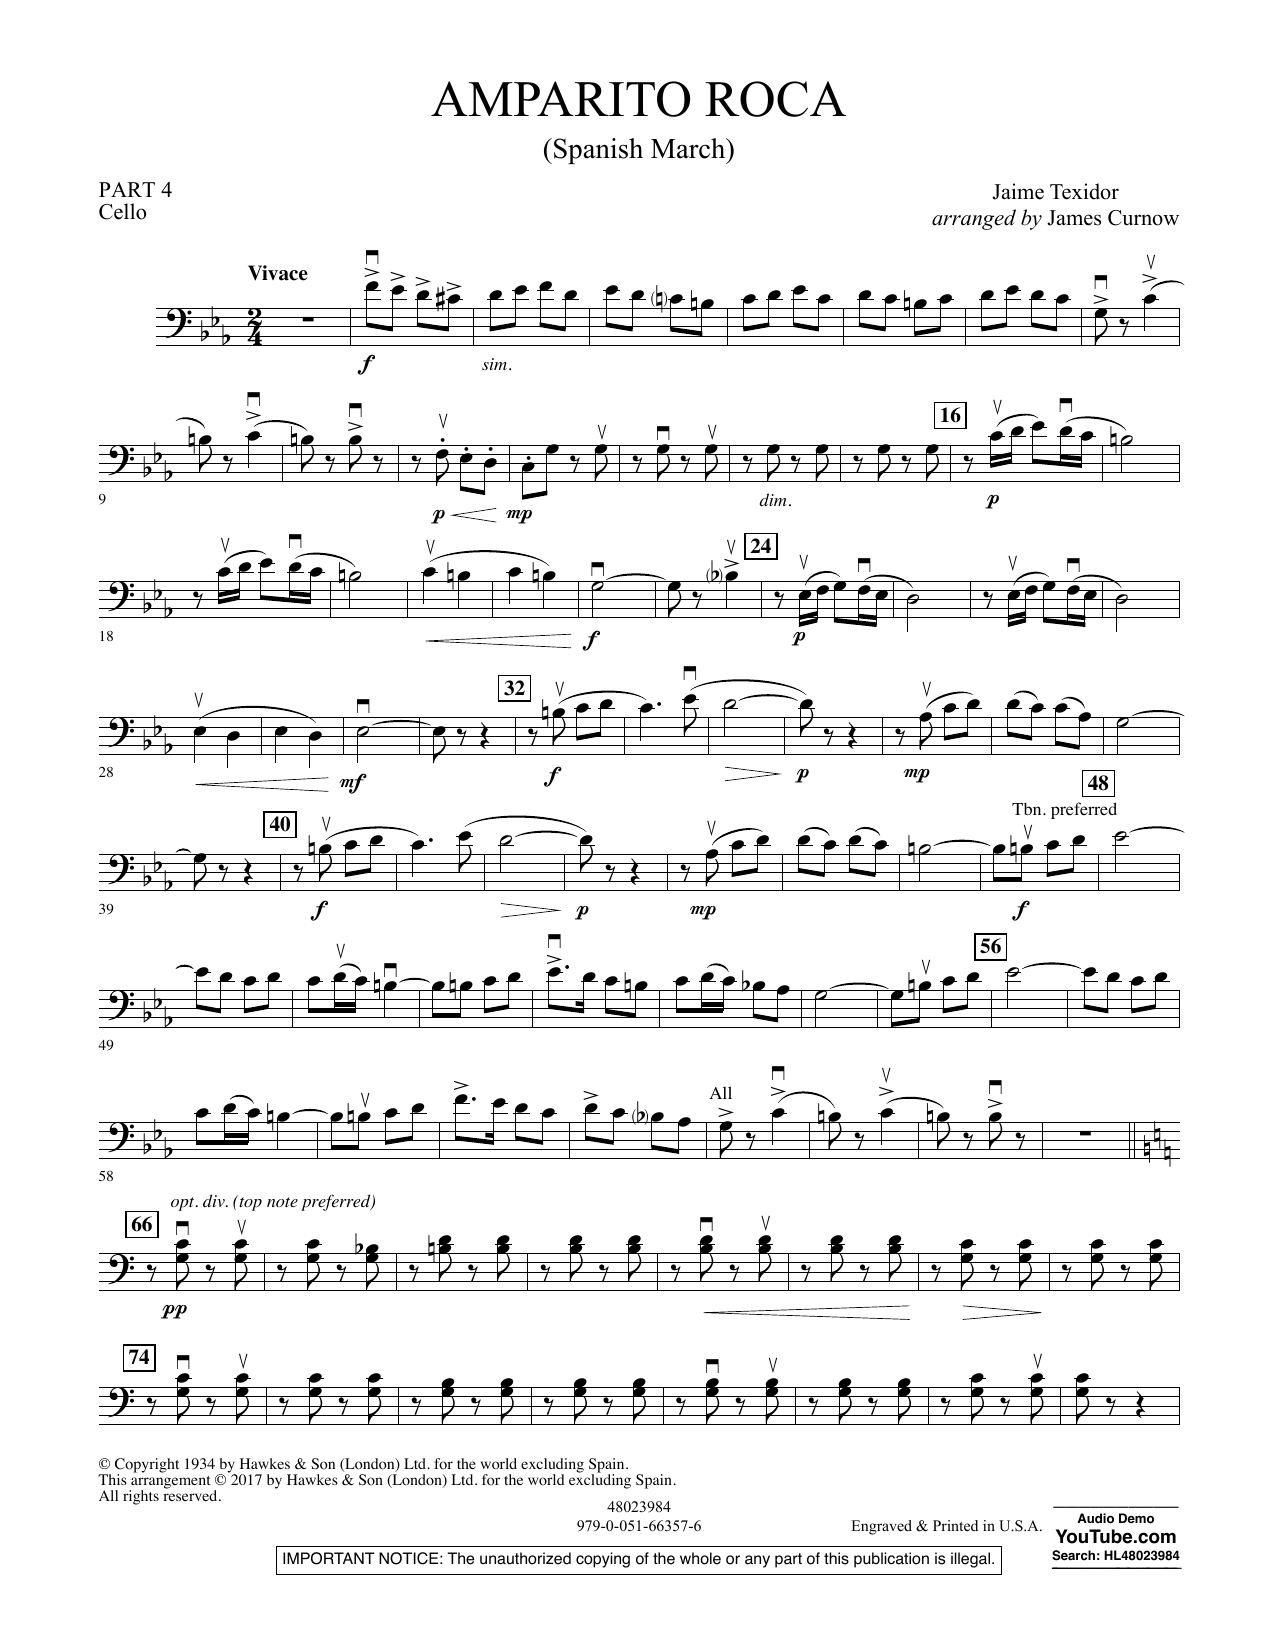 Amparito Roca (Spanish March) - Pt.4 - Cello Sheet Music